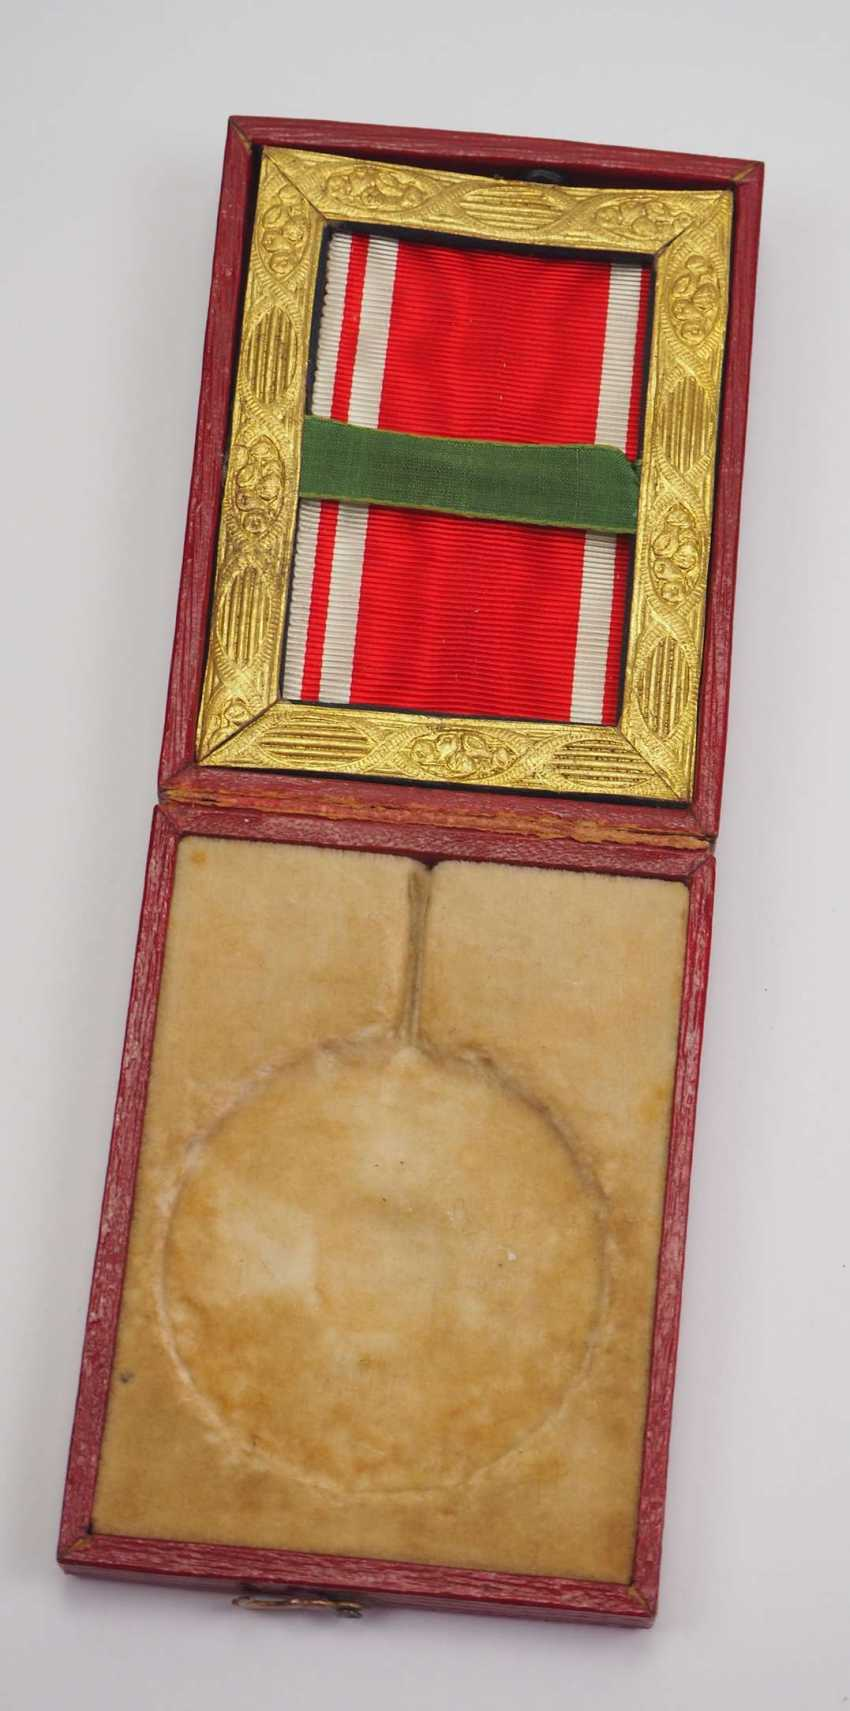 Russia: Imperial and Royal Order of St. Stanislaus - photo 3